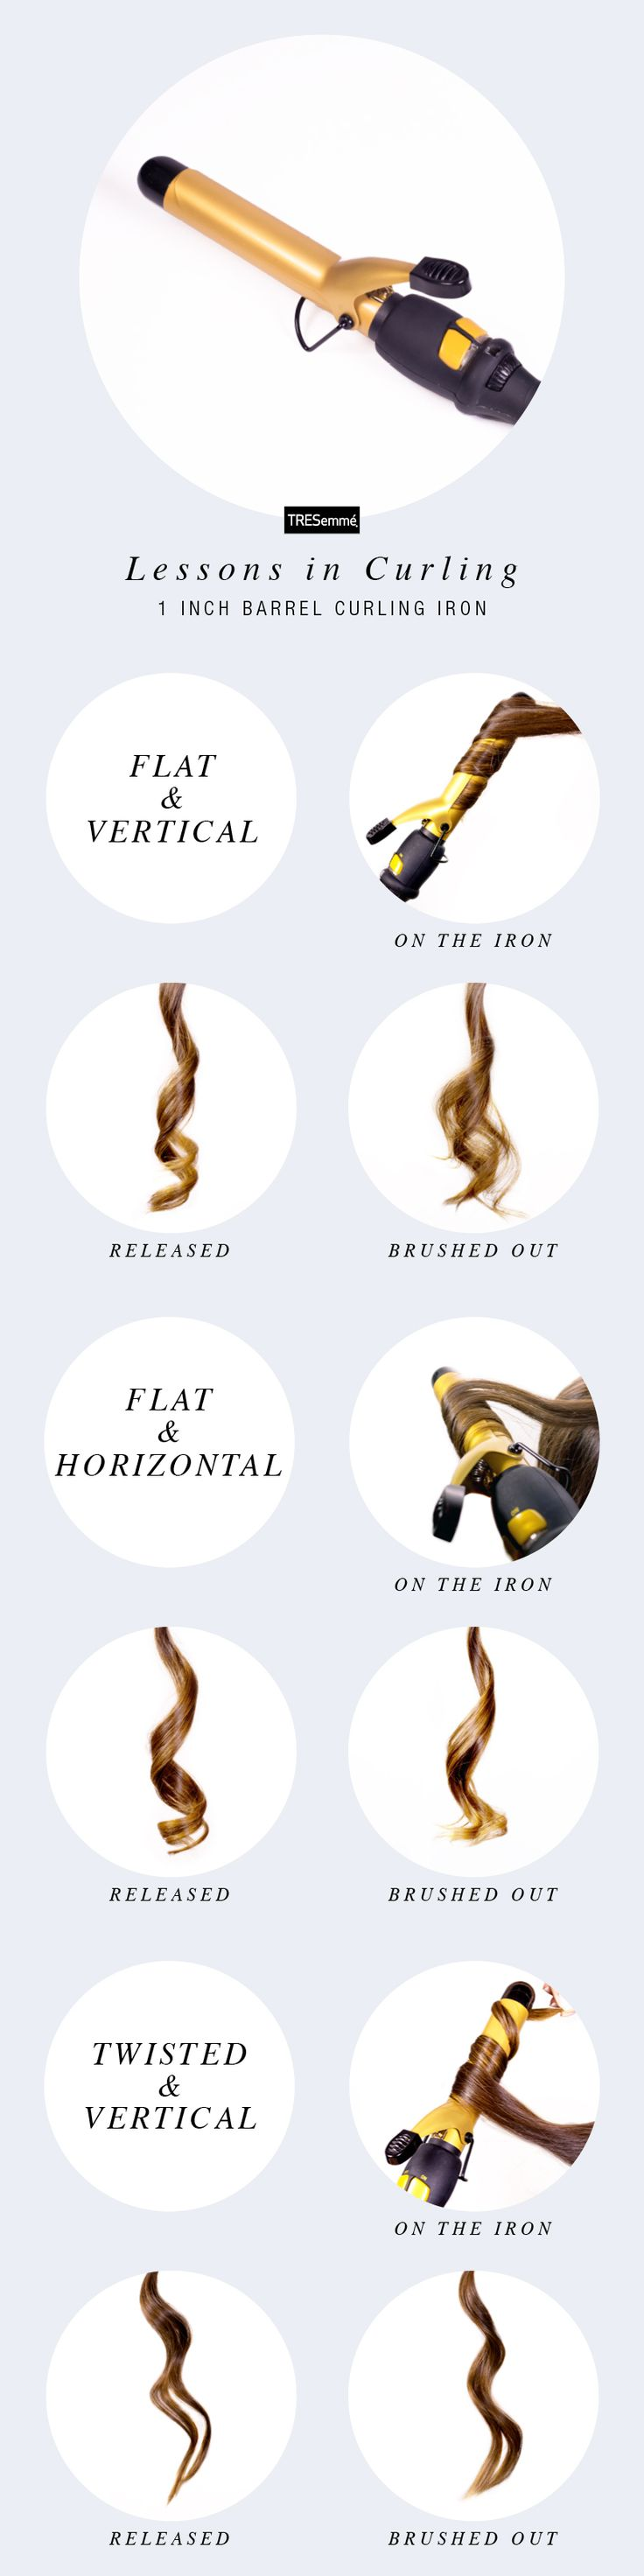 Do you ever stare at your curling iron in wonderment, knowing that it has so much unlocked potential? (We have.) Well, wonder no more. Time to get the most out of your 1 inch curling iron!